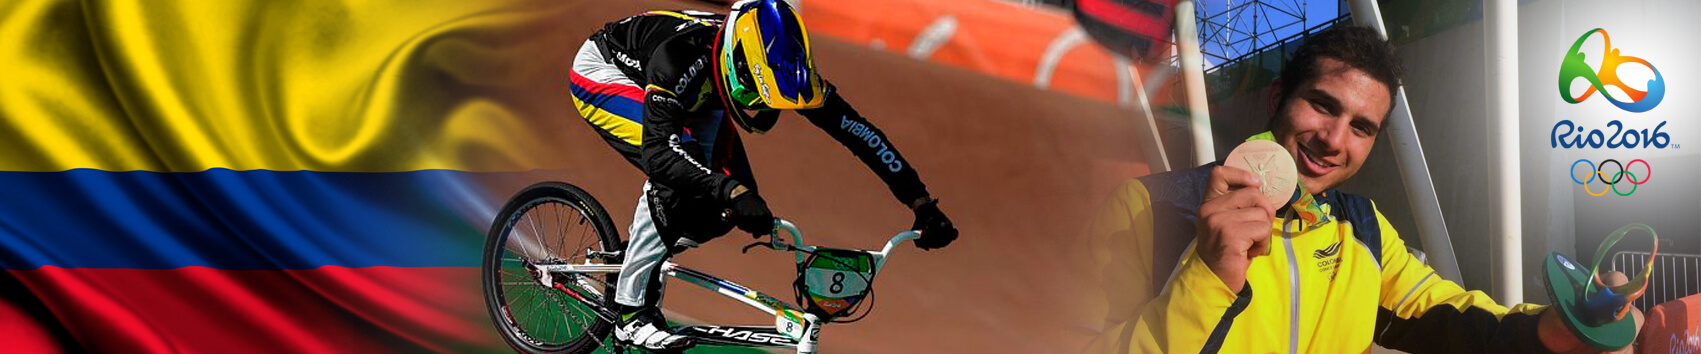 carlos-ramirez-olympic-interview-fifteen-bmx